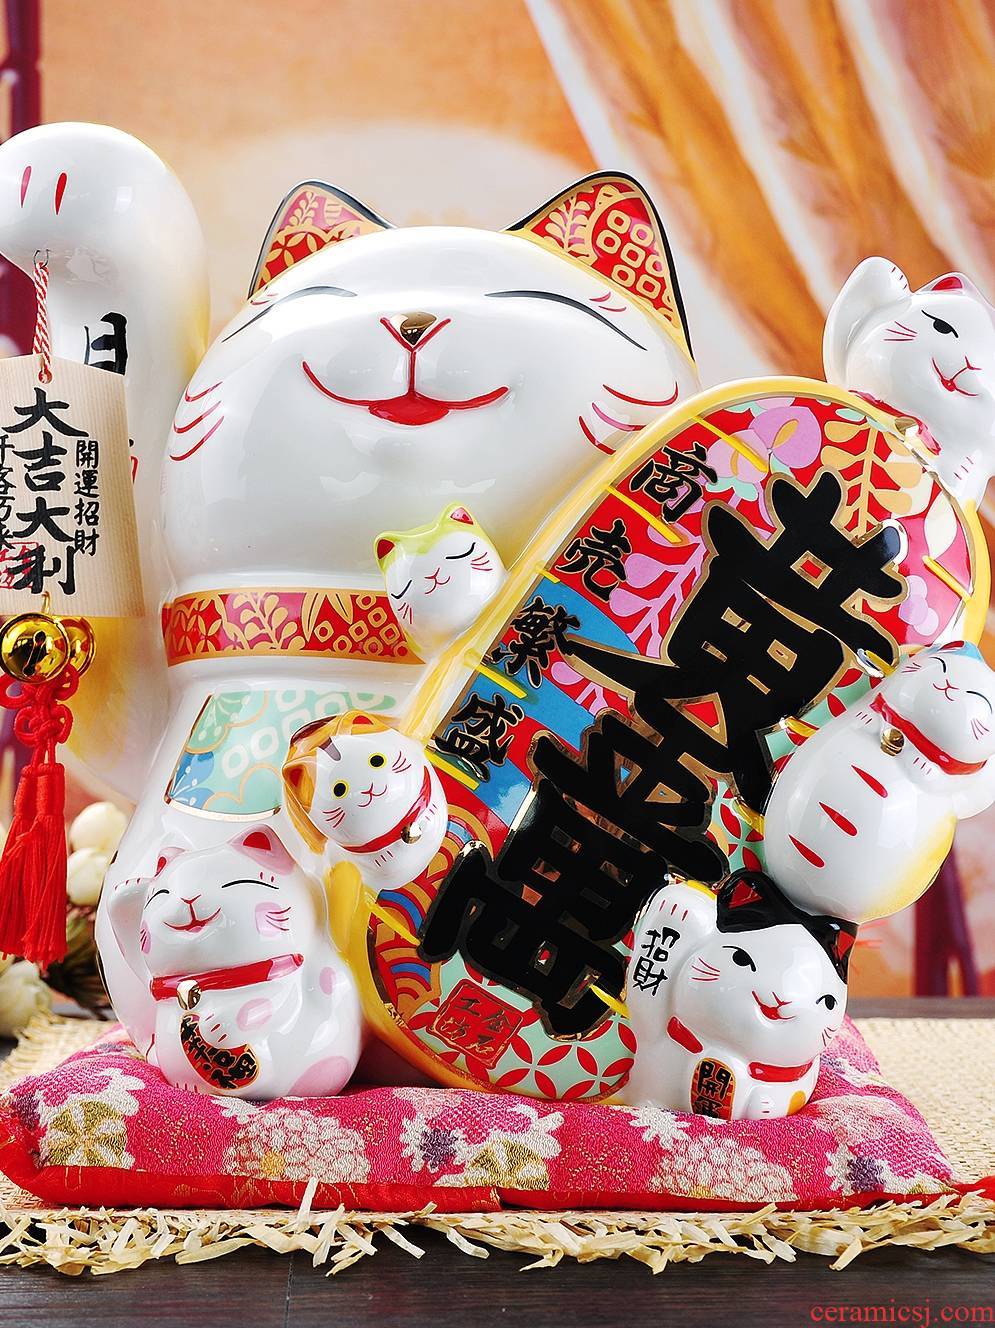 Opening gifts plutus cat furnishing articles super - sized ceramic piggy bank company store cashier at the front desk place a money - box